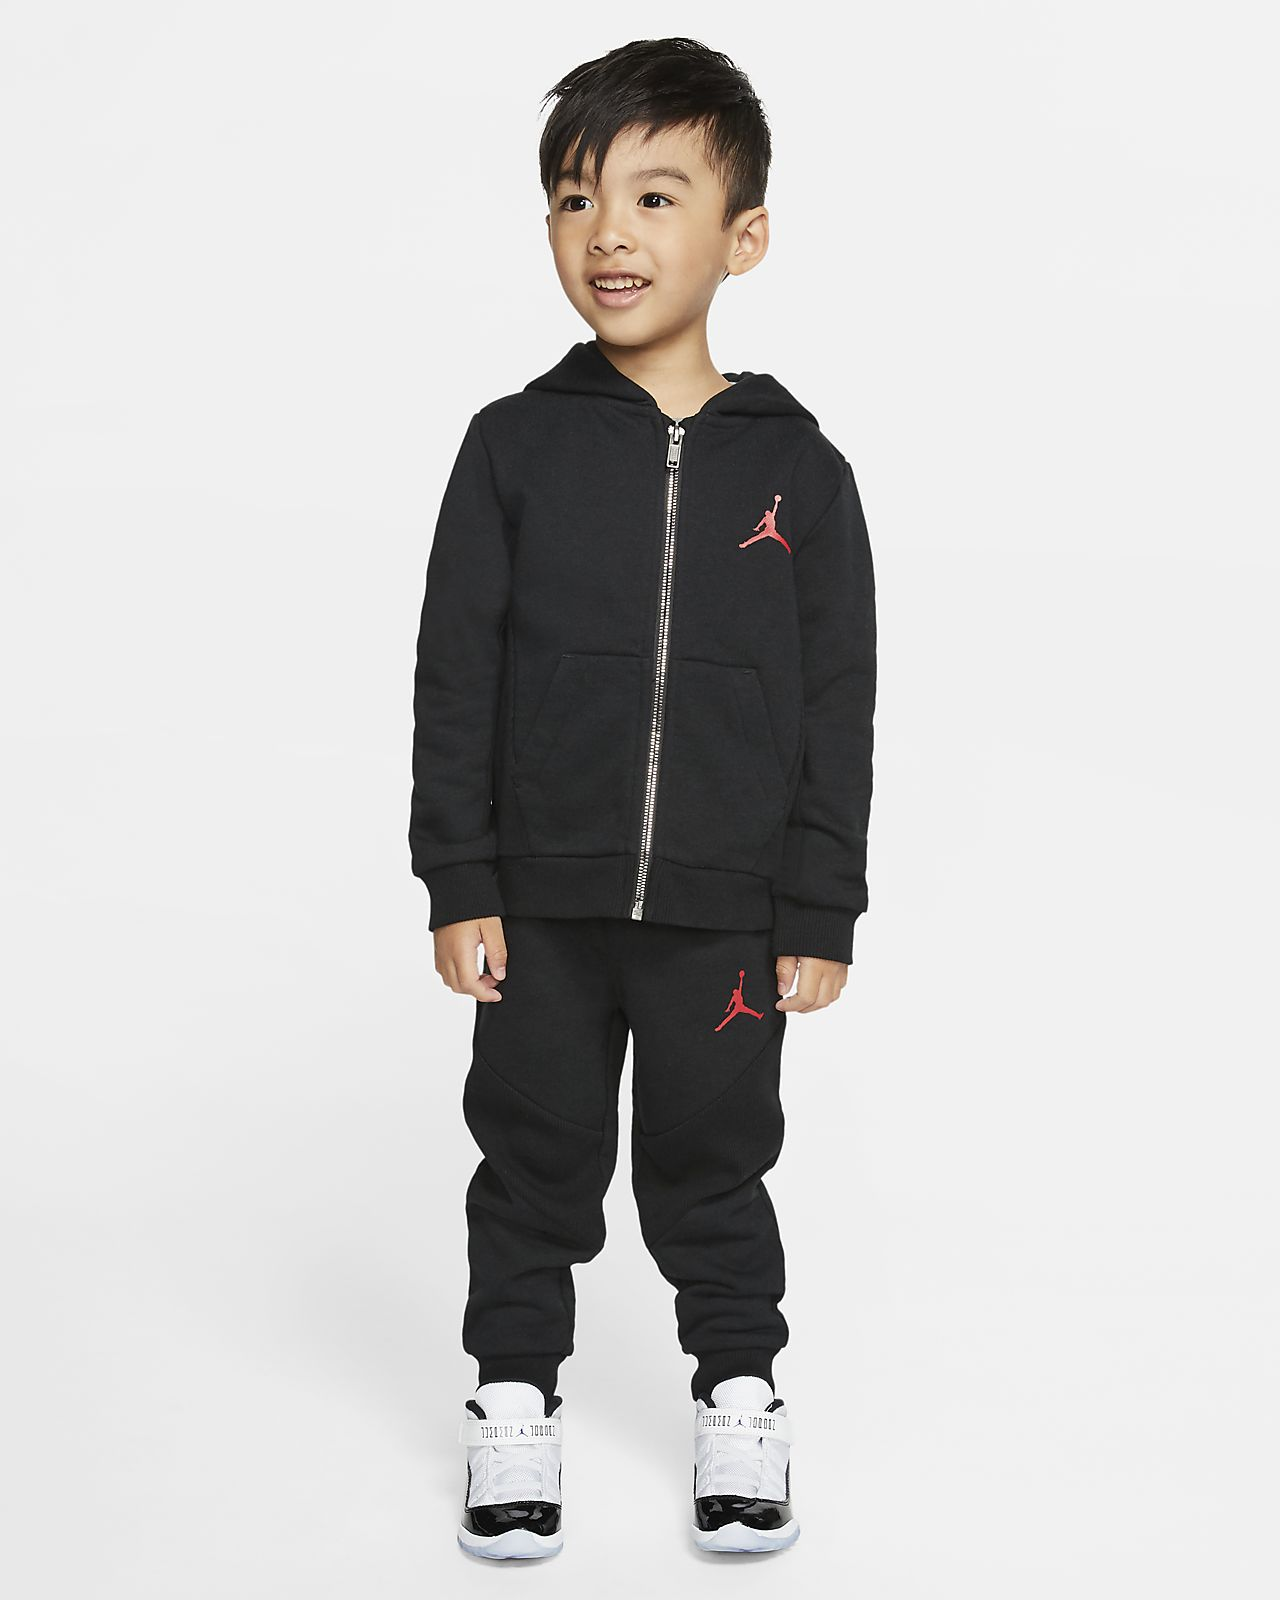 Jordan Jumpman Toddler Hoodie and Joggers (2-Piece Set)